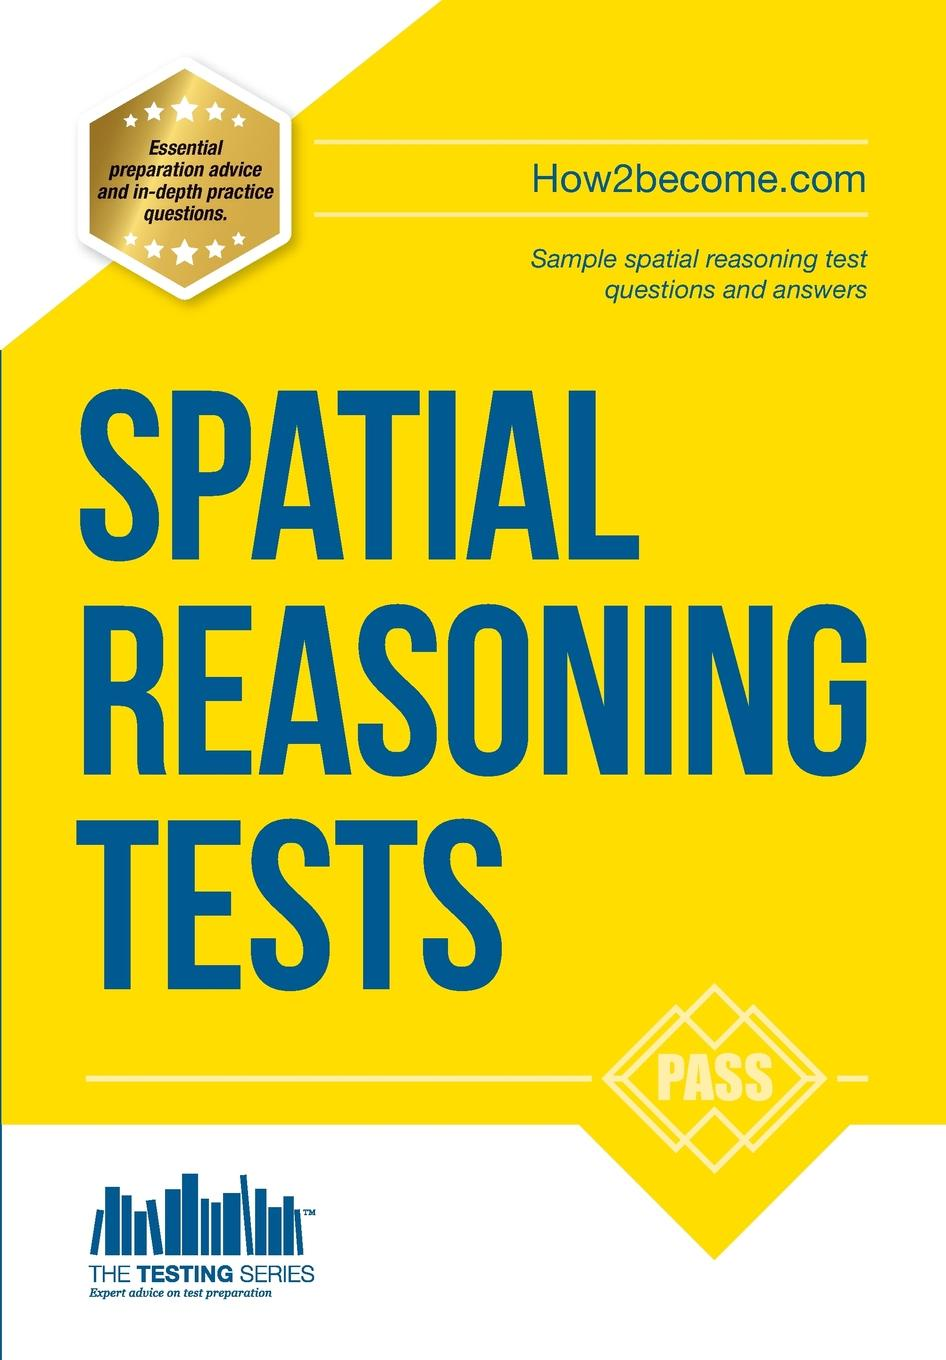 How2Become Spatial Reasoning Tests - The ULTIMATE guide to passing spatial reasoning tests (Testing Series) gaetano assanto nematicons spatial optical solitons in nematic liquid crystals